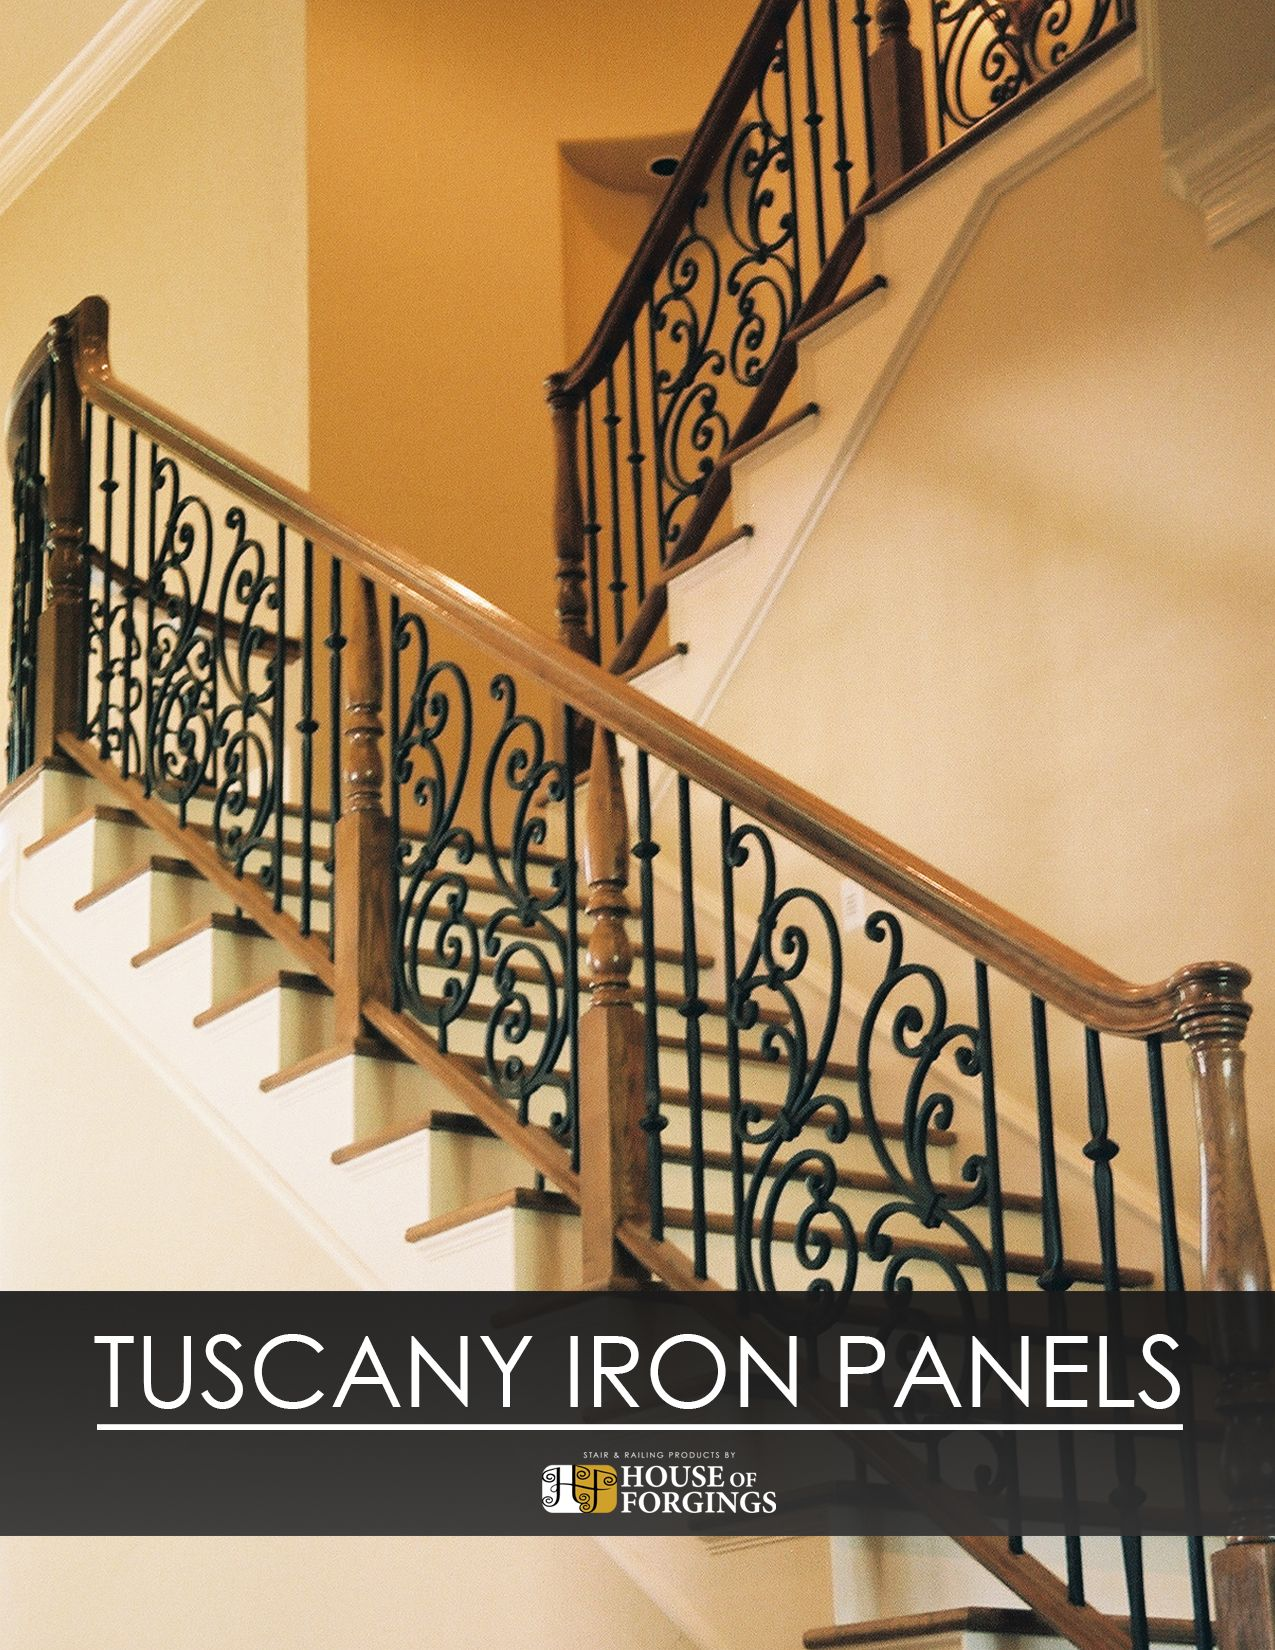 Wrought Iron Panels Are An Excellent Way To Give Your Staircase An Elegant And Custom Look Iron Pa Wrought Iron Stair Railing Stair Railing Iron Stair Railing